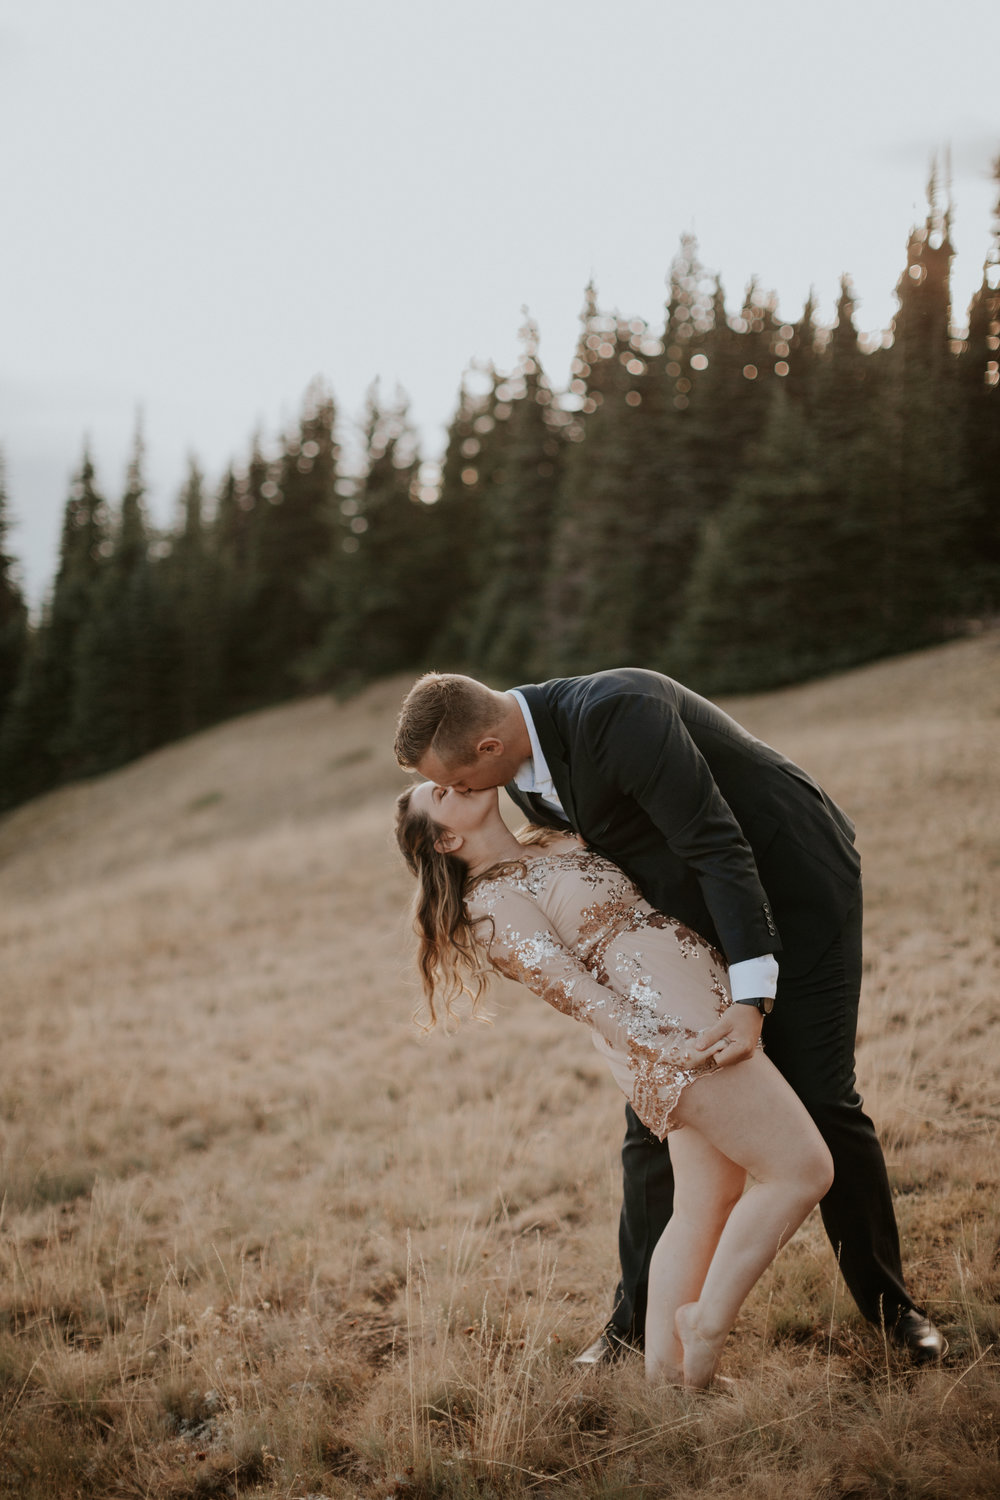 PNW-Hurricane-Ridge-Port-Angeles-Washington-elopement-photographer-kayla-dawn-photography-kayladawnphoto-wedding-anniversary-photoshoot-olympic-peninsula-274.jpg